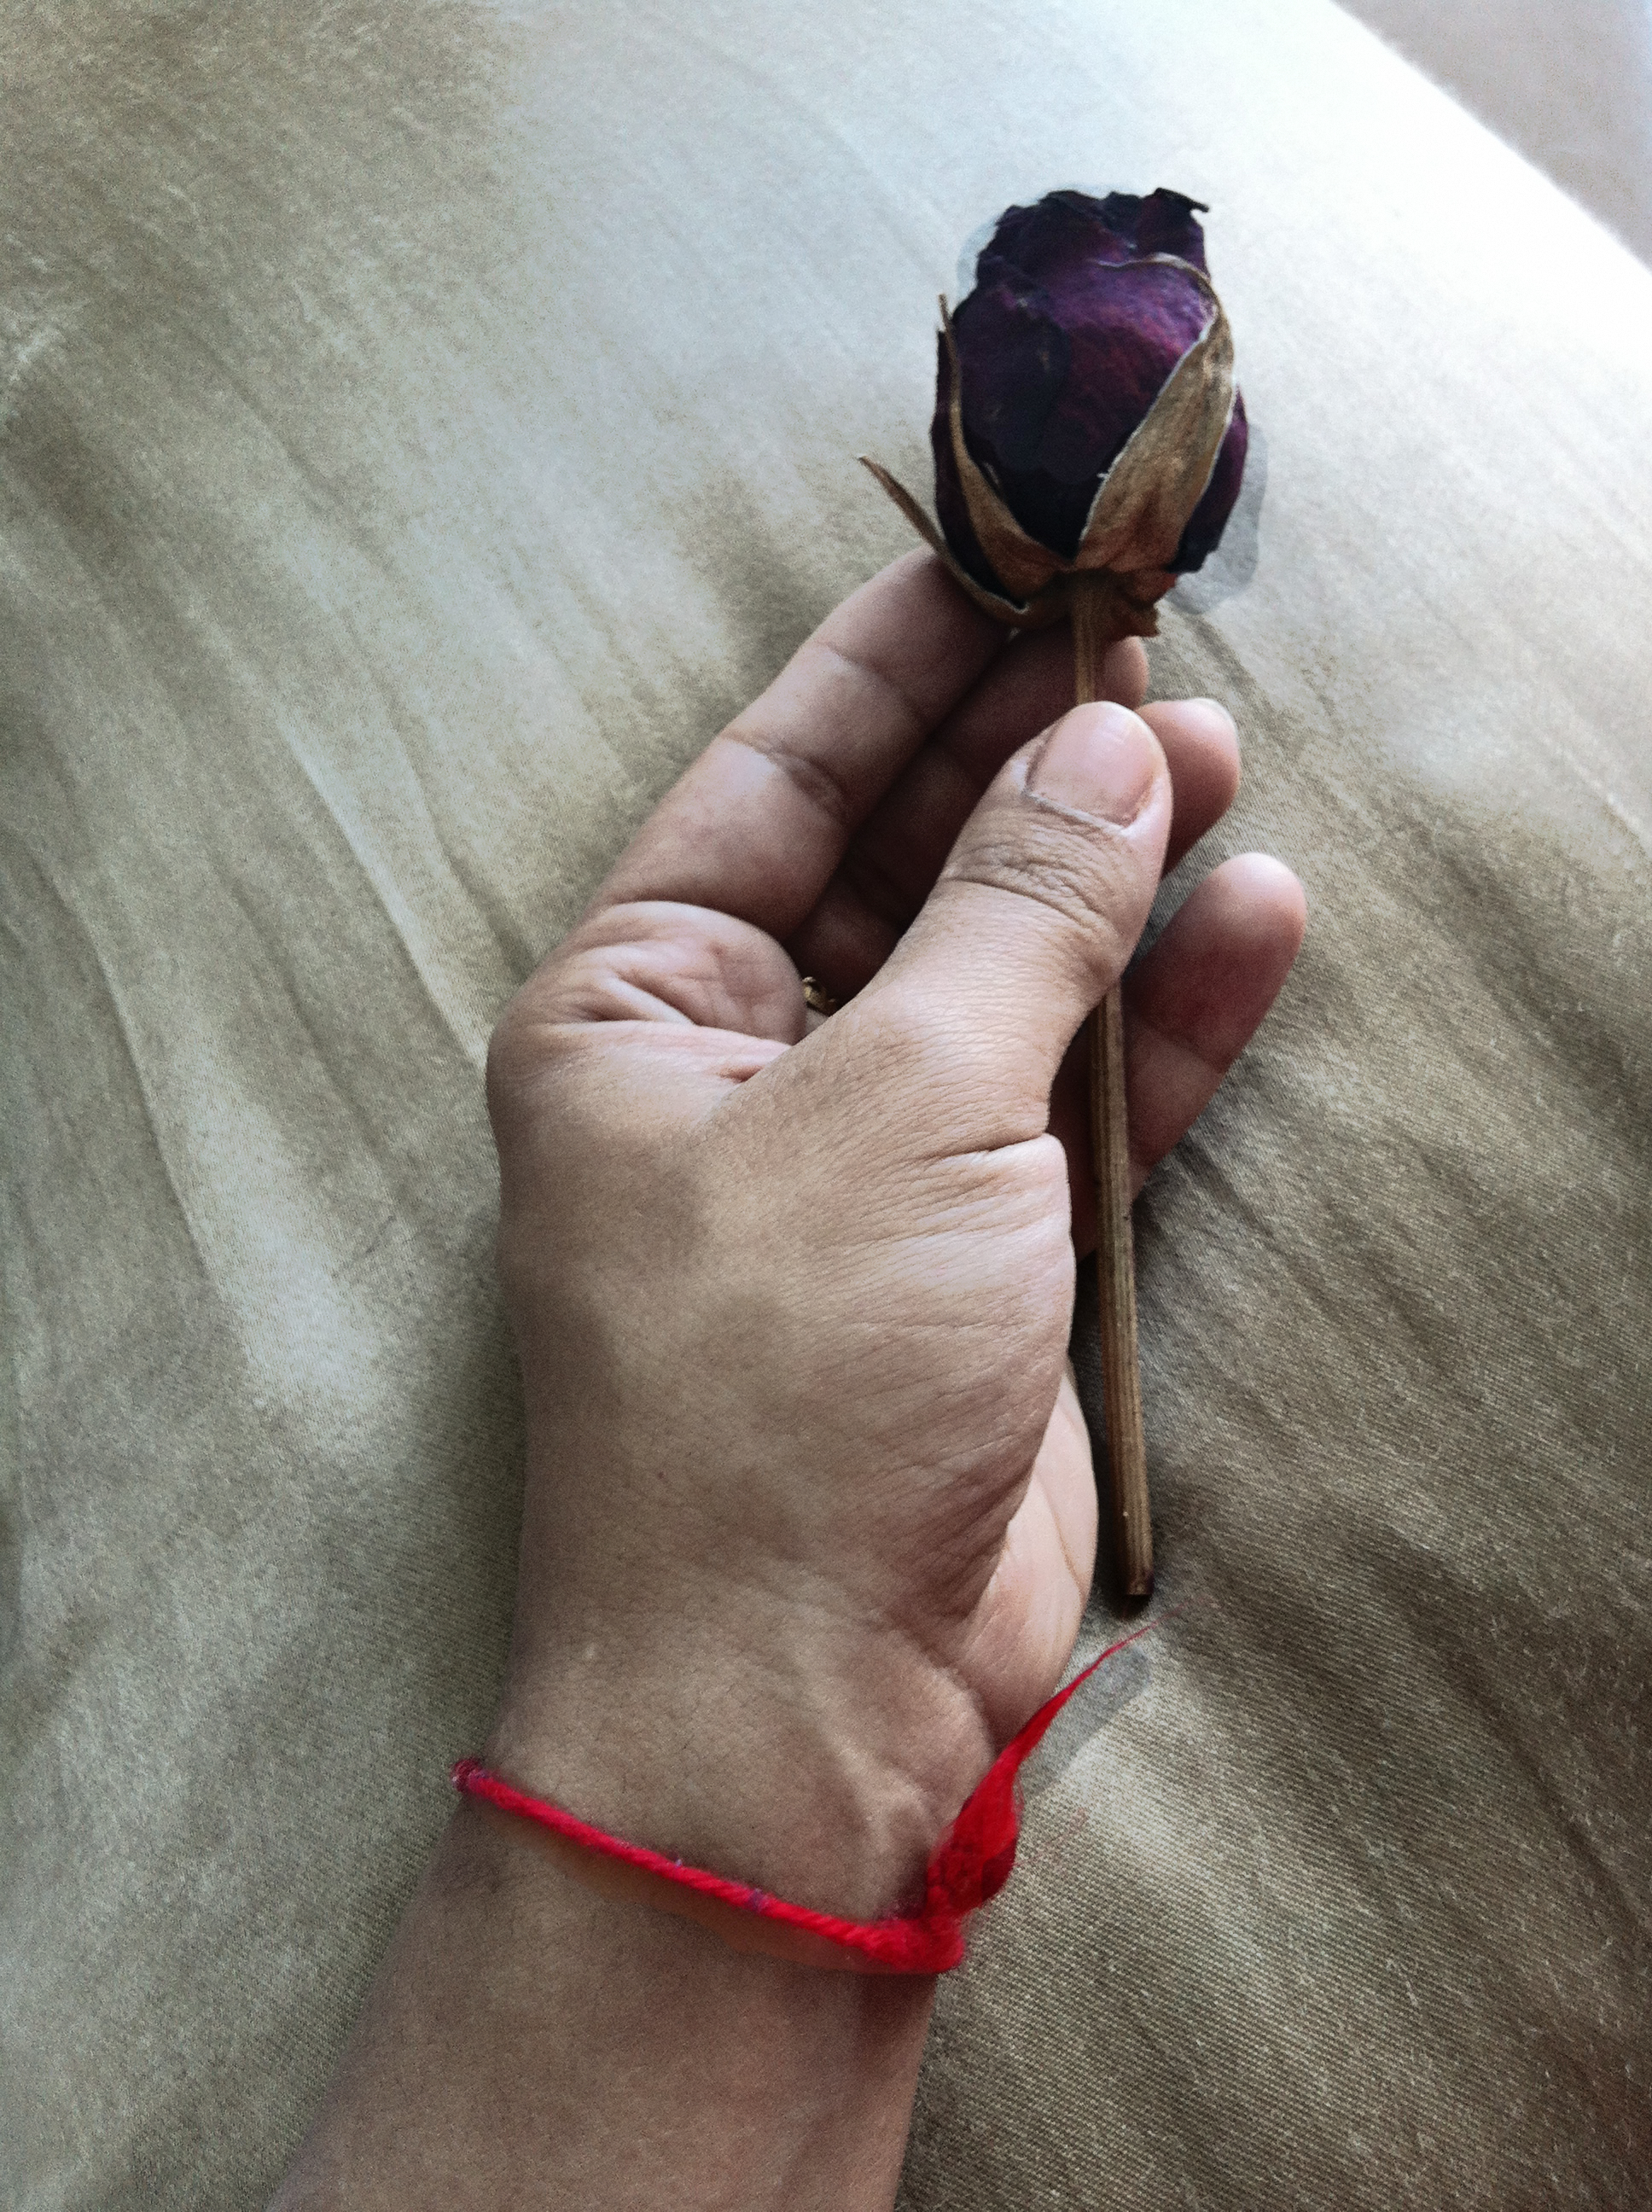 Why wear a red thread on his wrist and which hand